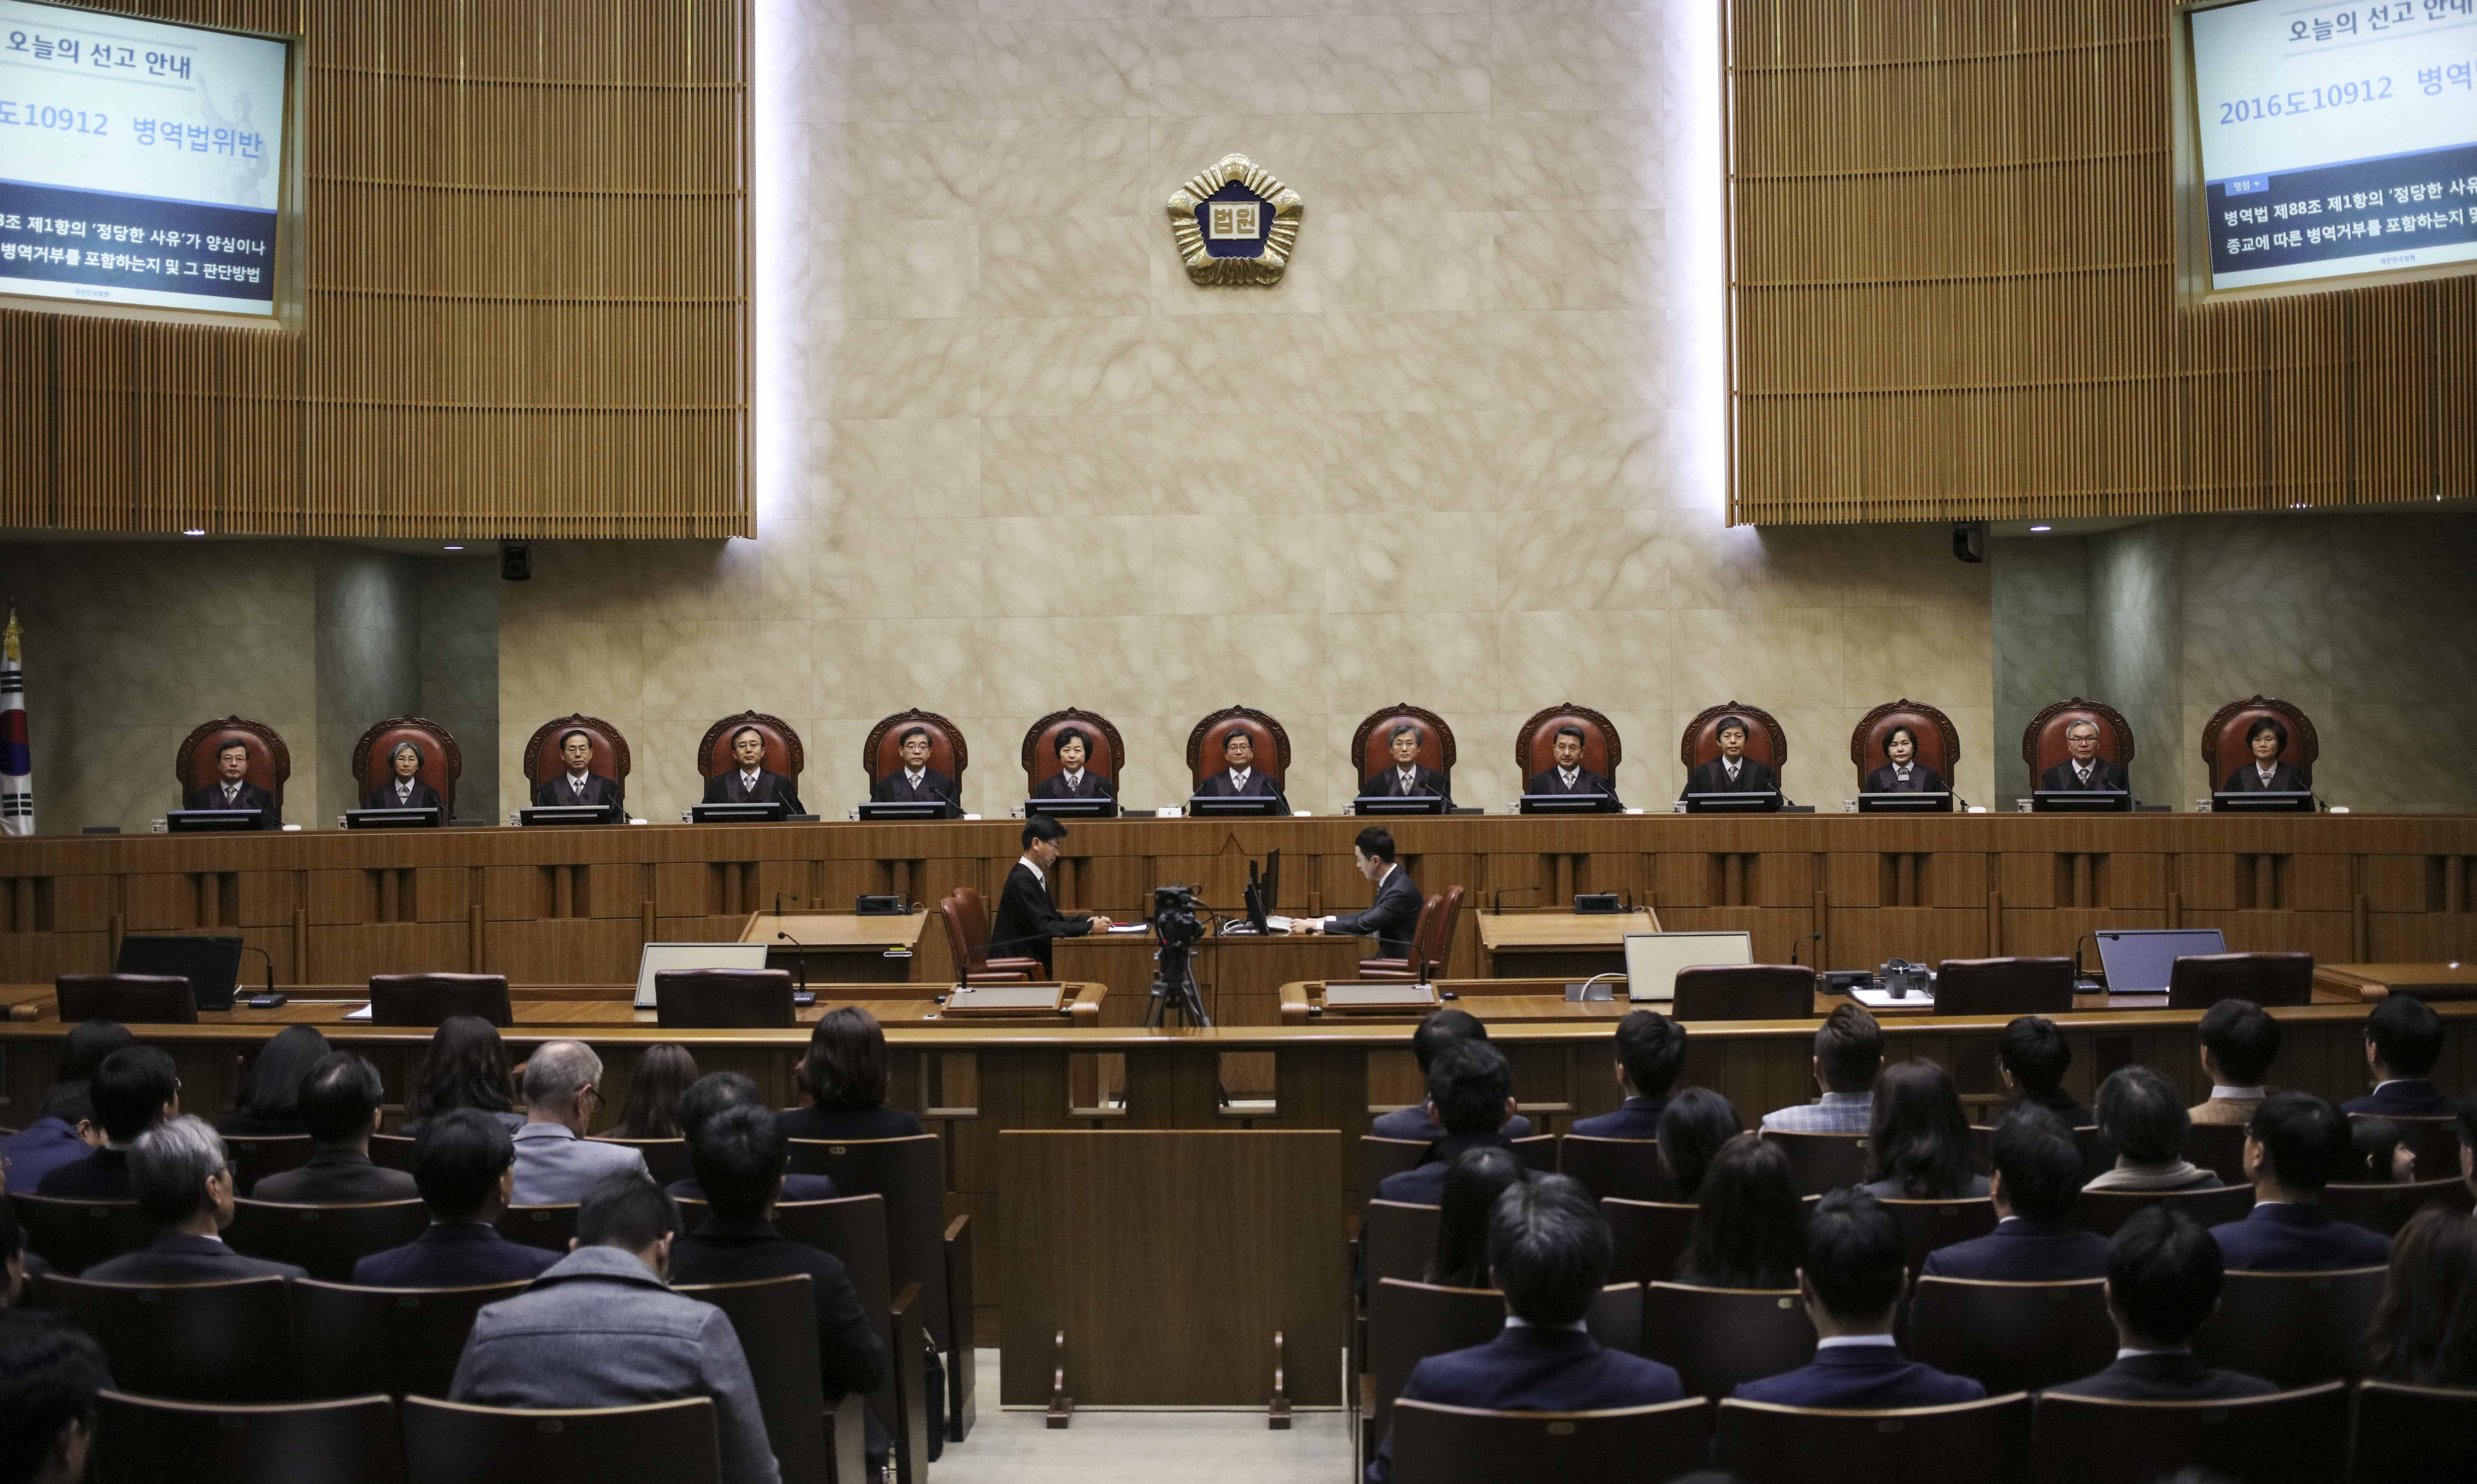 S. Korean court upholds conscientious objection to military